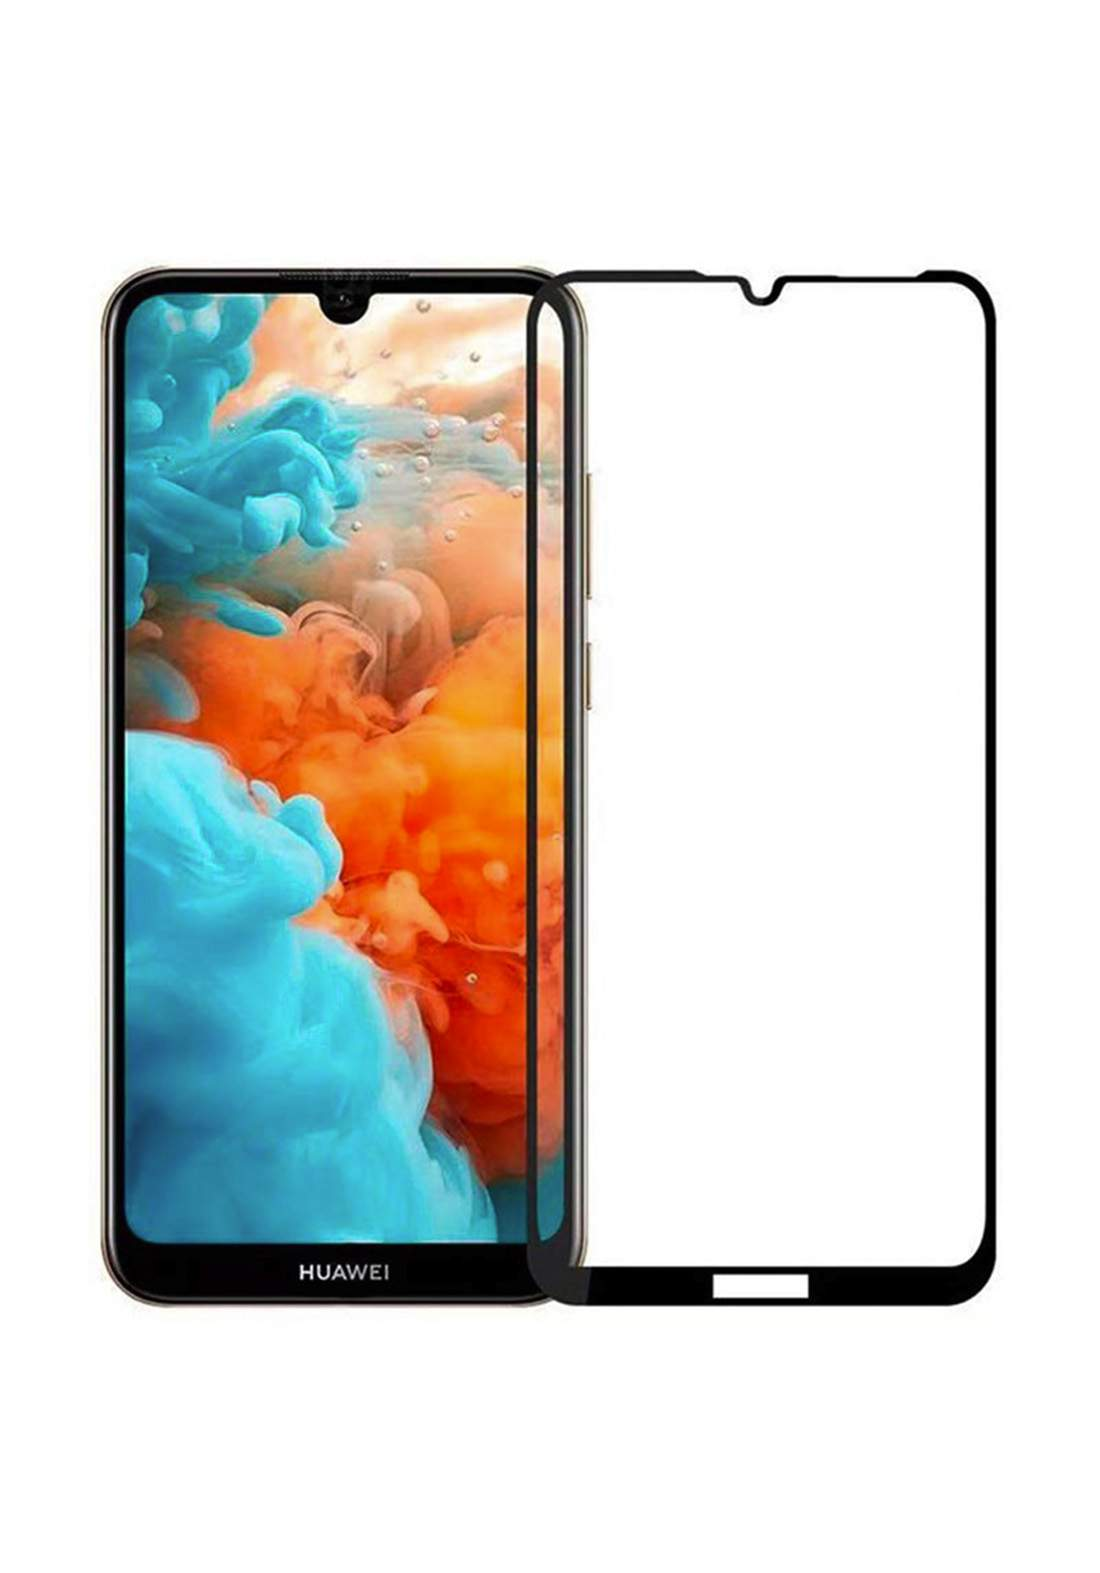 Huawei Y7 2019 3D Tempered Glass Screen Protector - Black واقي شاشة